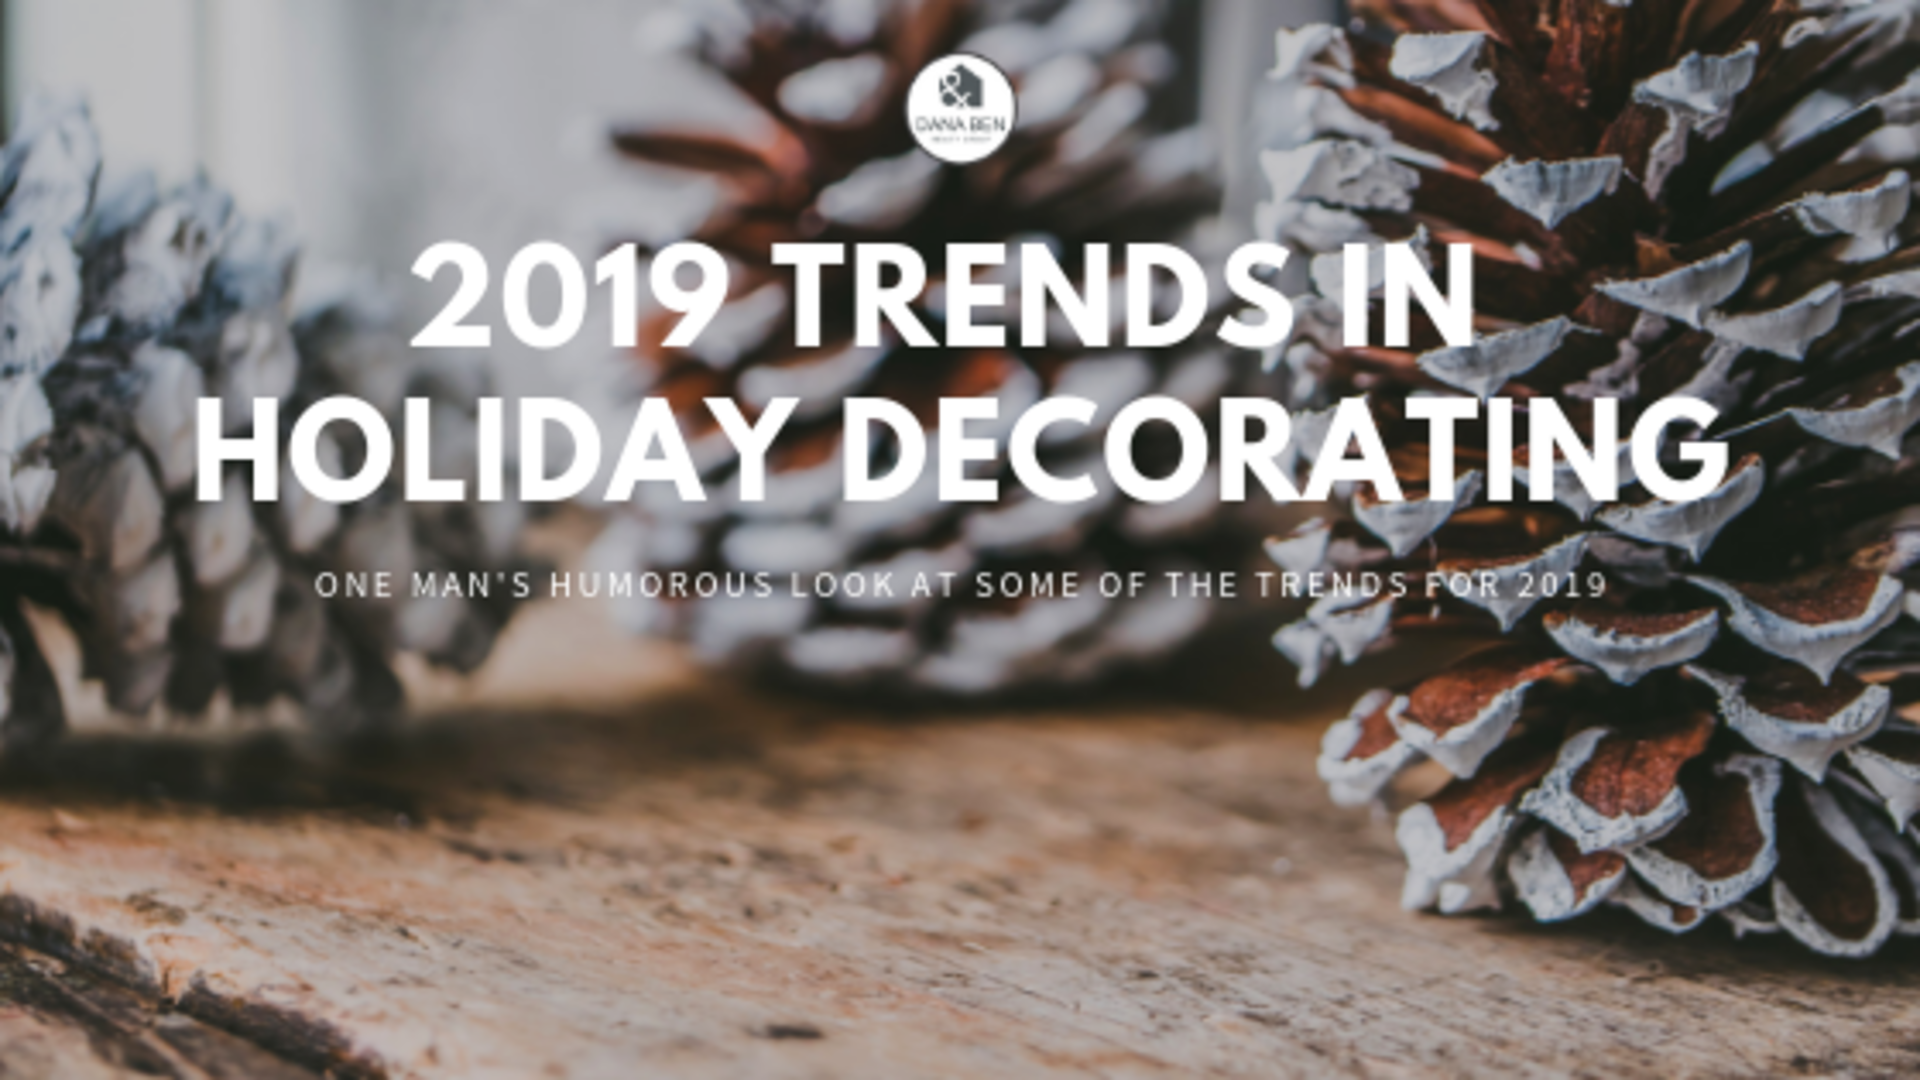 2019 Trends in Holiday Decorating